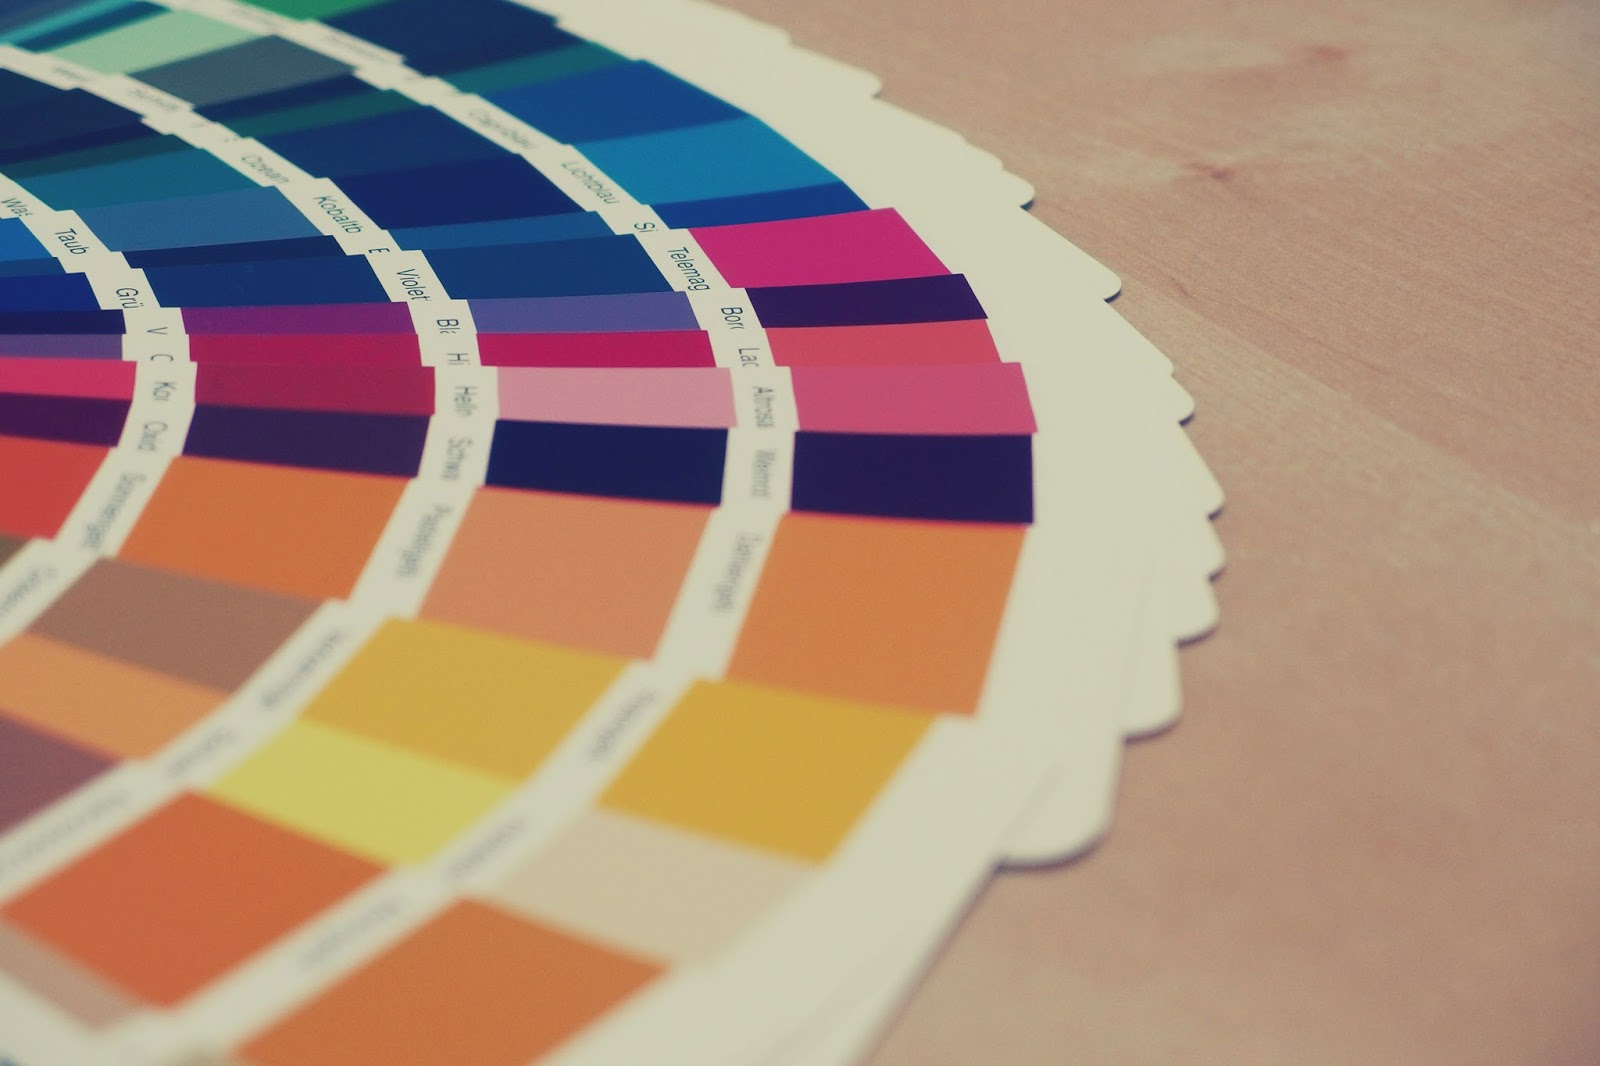 Colour charts - care home decoration - motherdistracted.co.uk